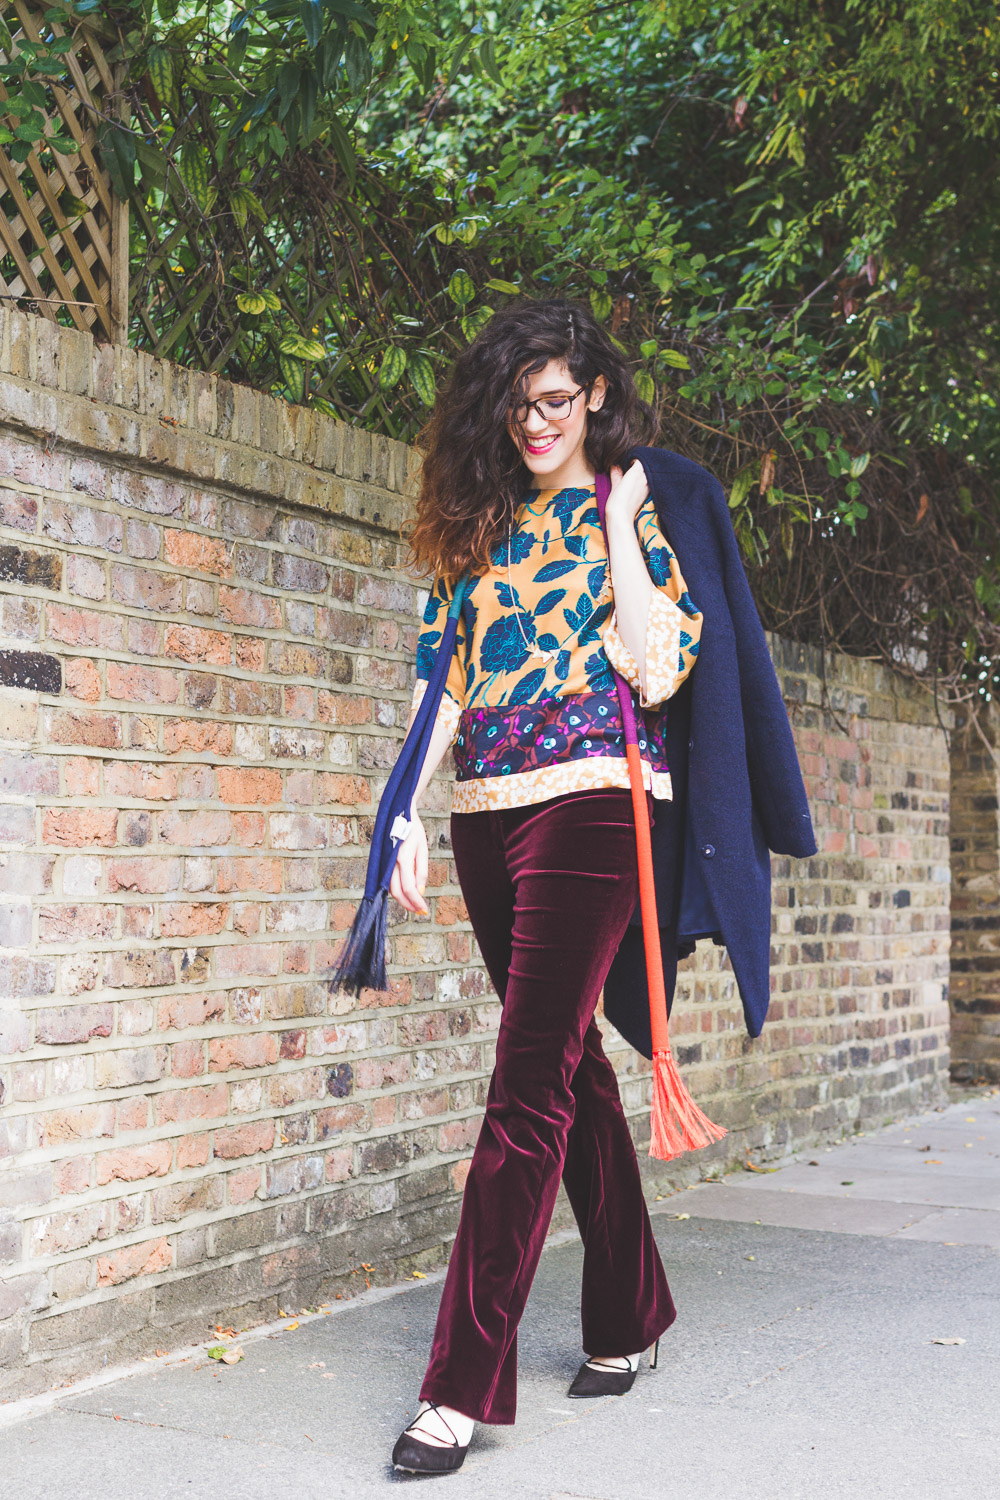 boden ICONS collection seventies style outfit at home